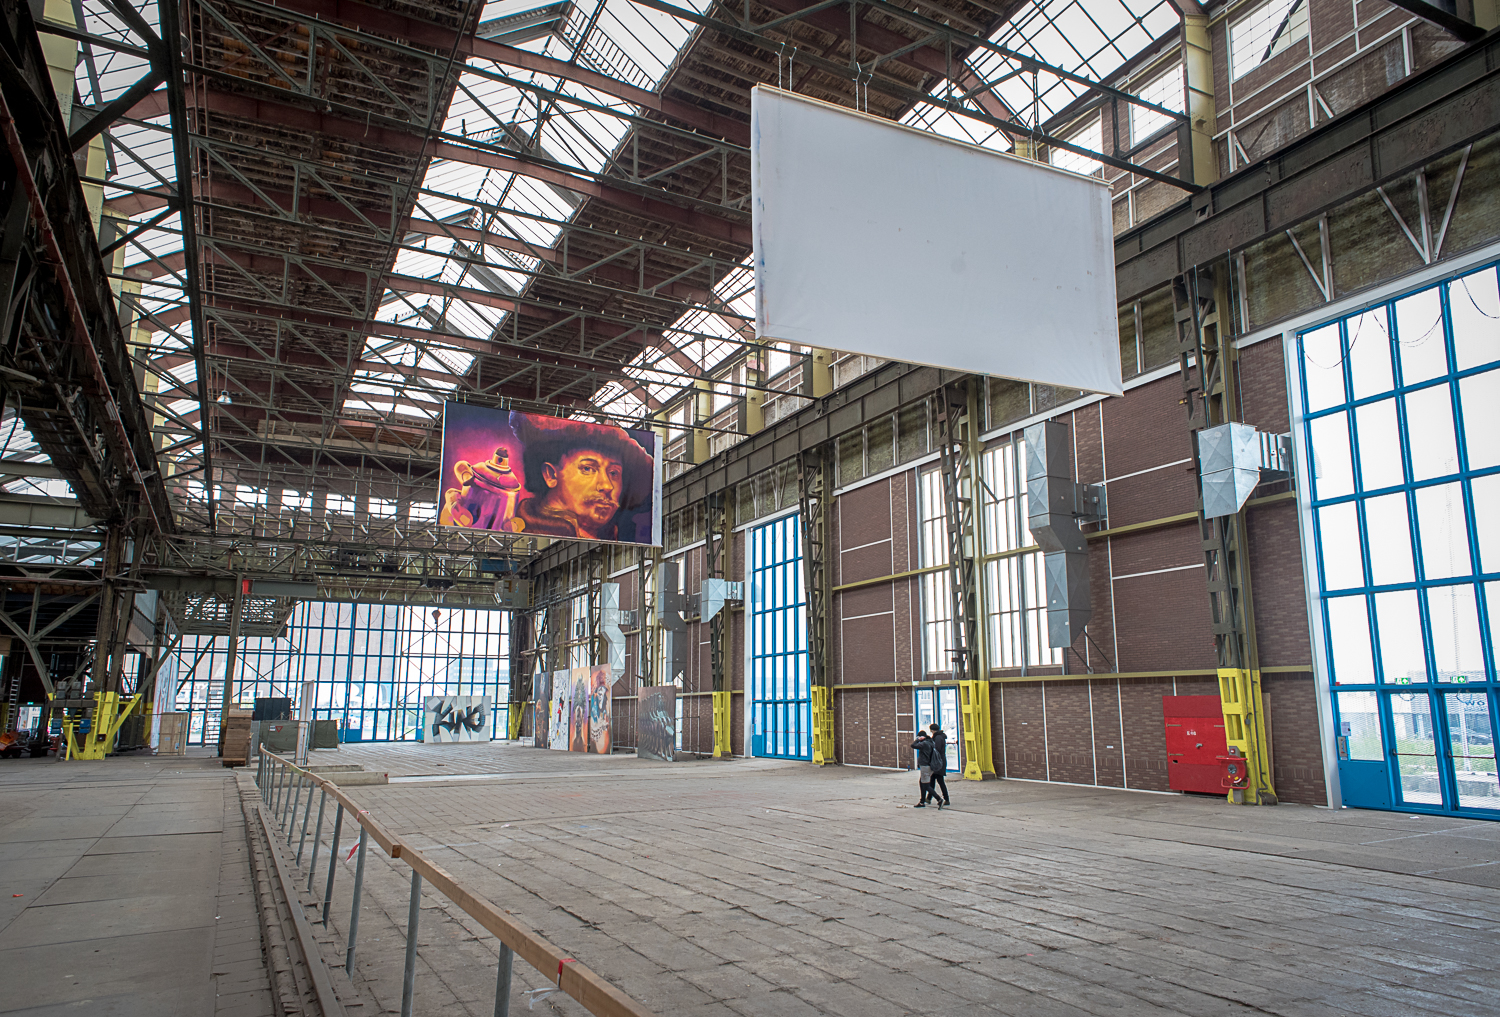 © Ayash Basu. Massive exhibition and display spaces used for gatherings, events and festivals are part of the Kunststad, one of the main hangars of the shipyard.